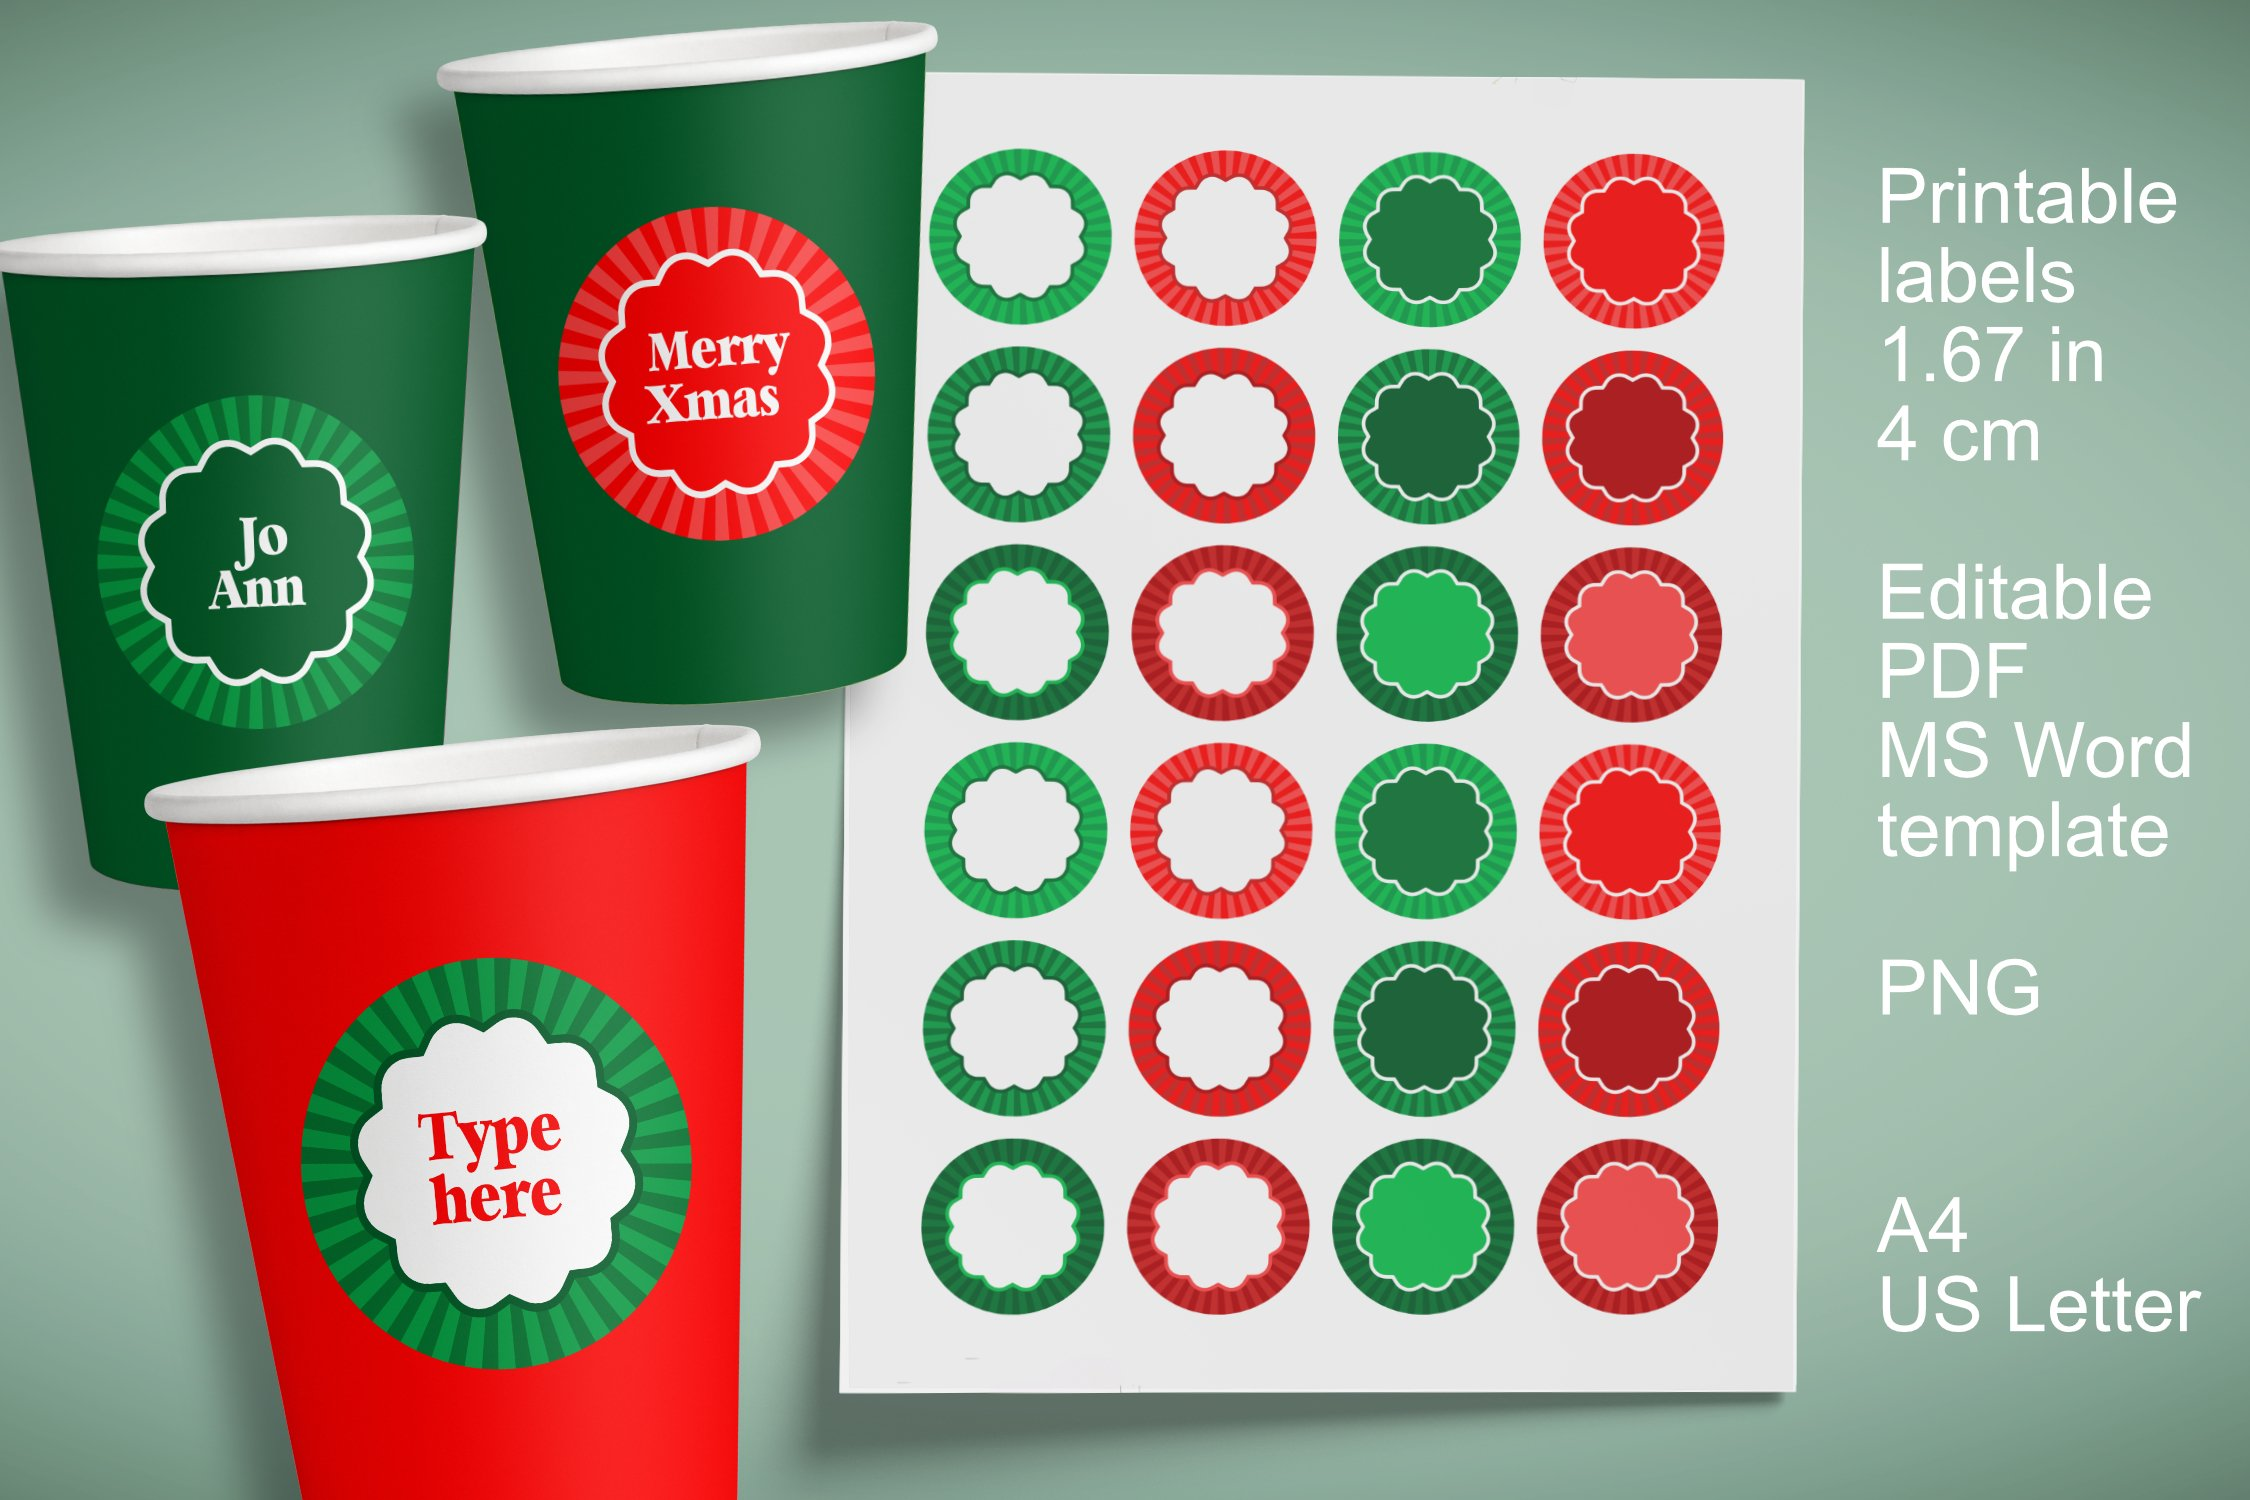 Small Christmas Labels 1.6 in, EU 4 cm for A4 and US Letter example image 1